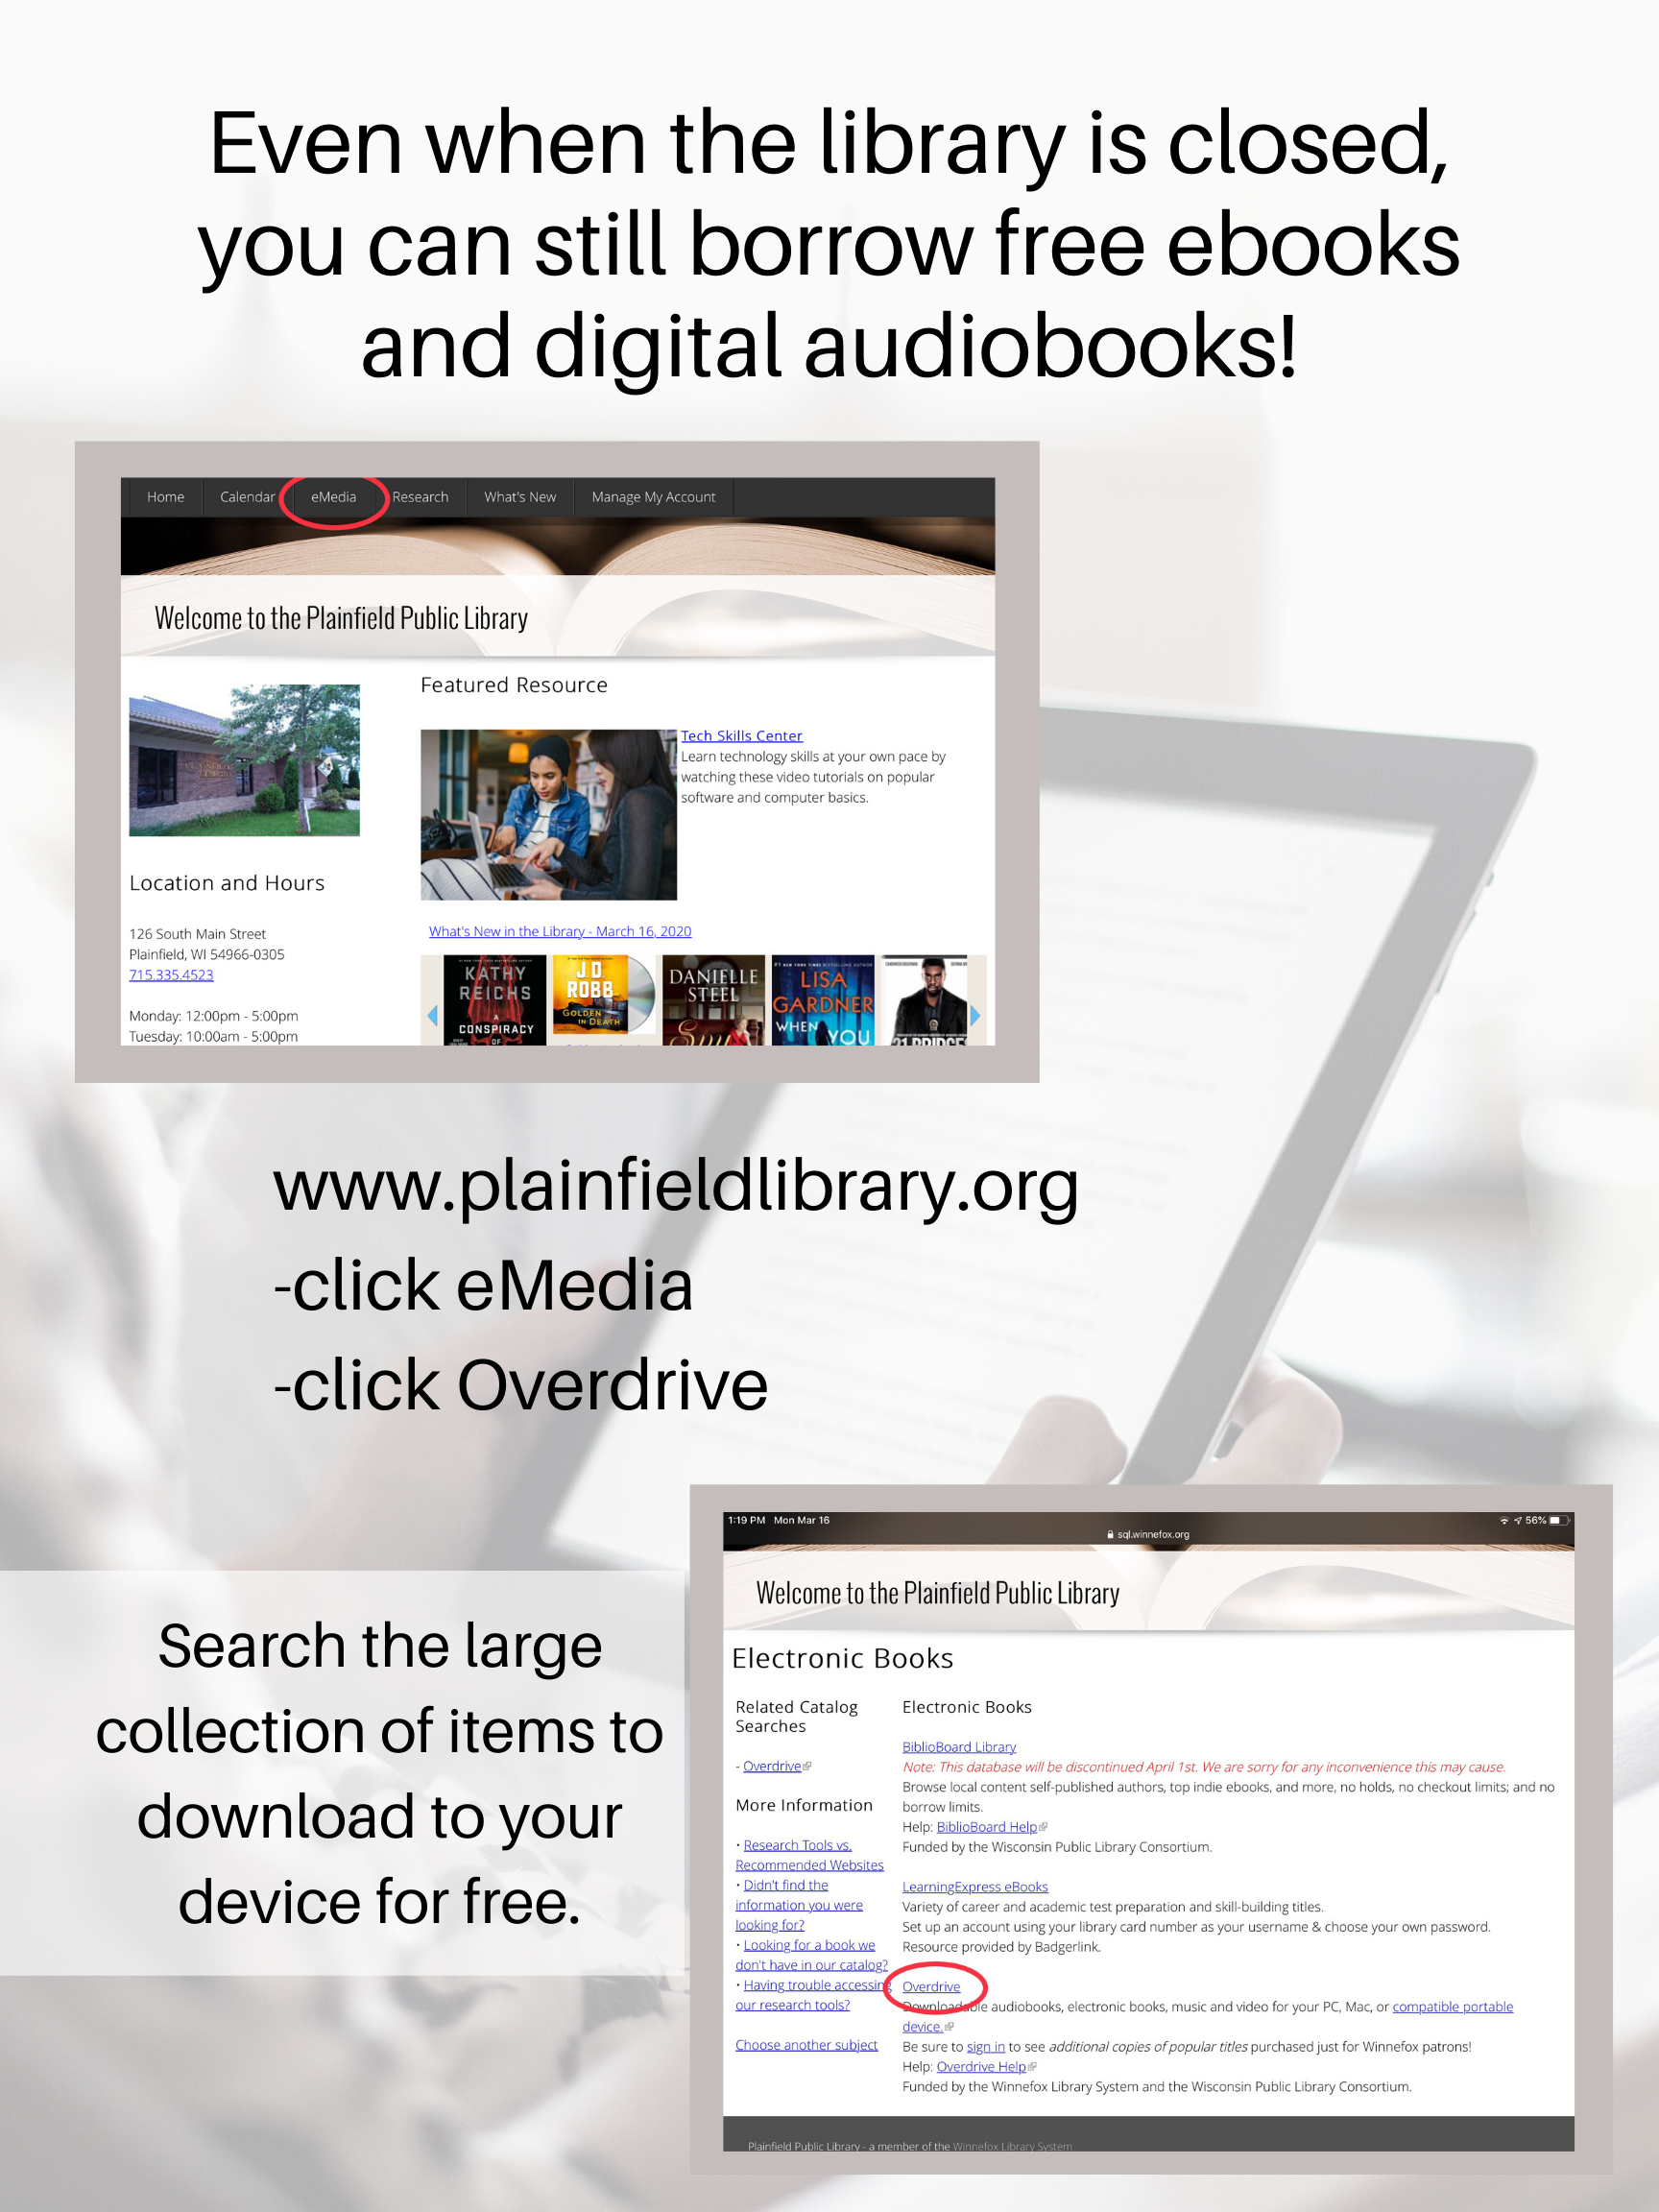 Overdrive is a great way to download books and audiobooks